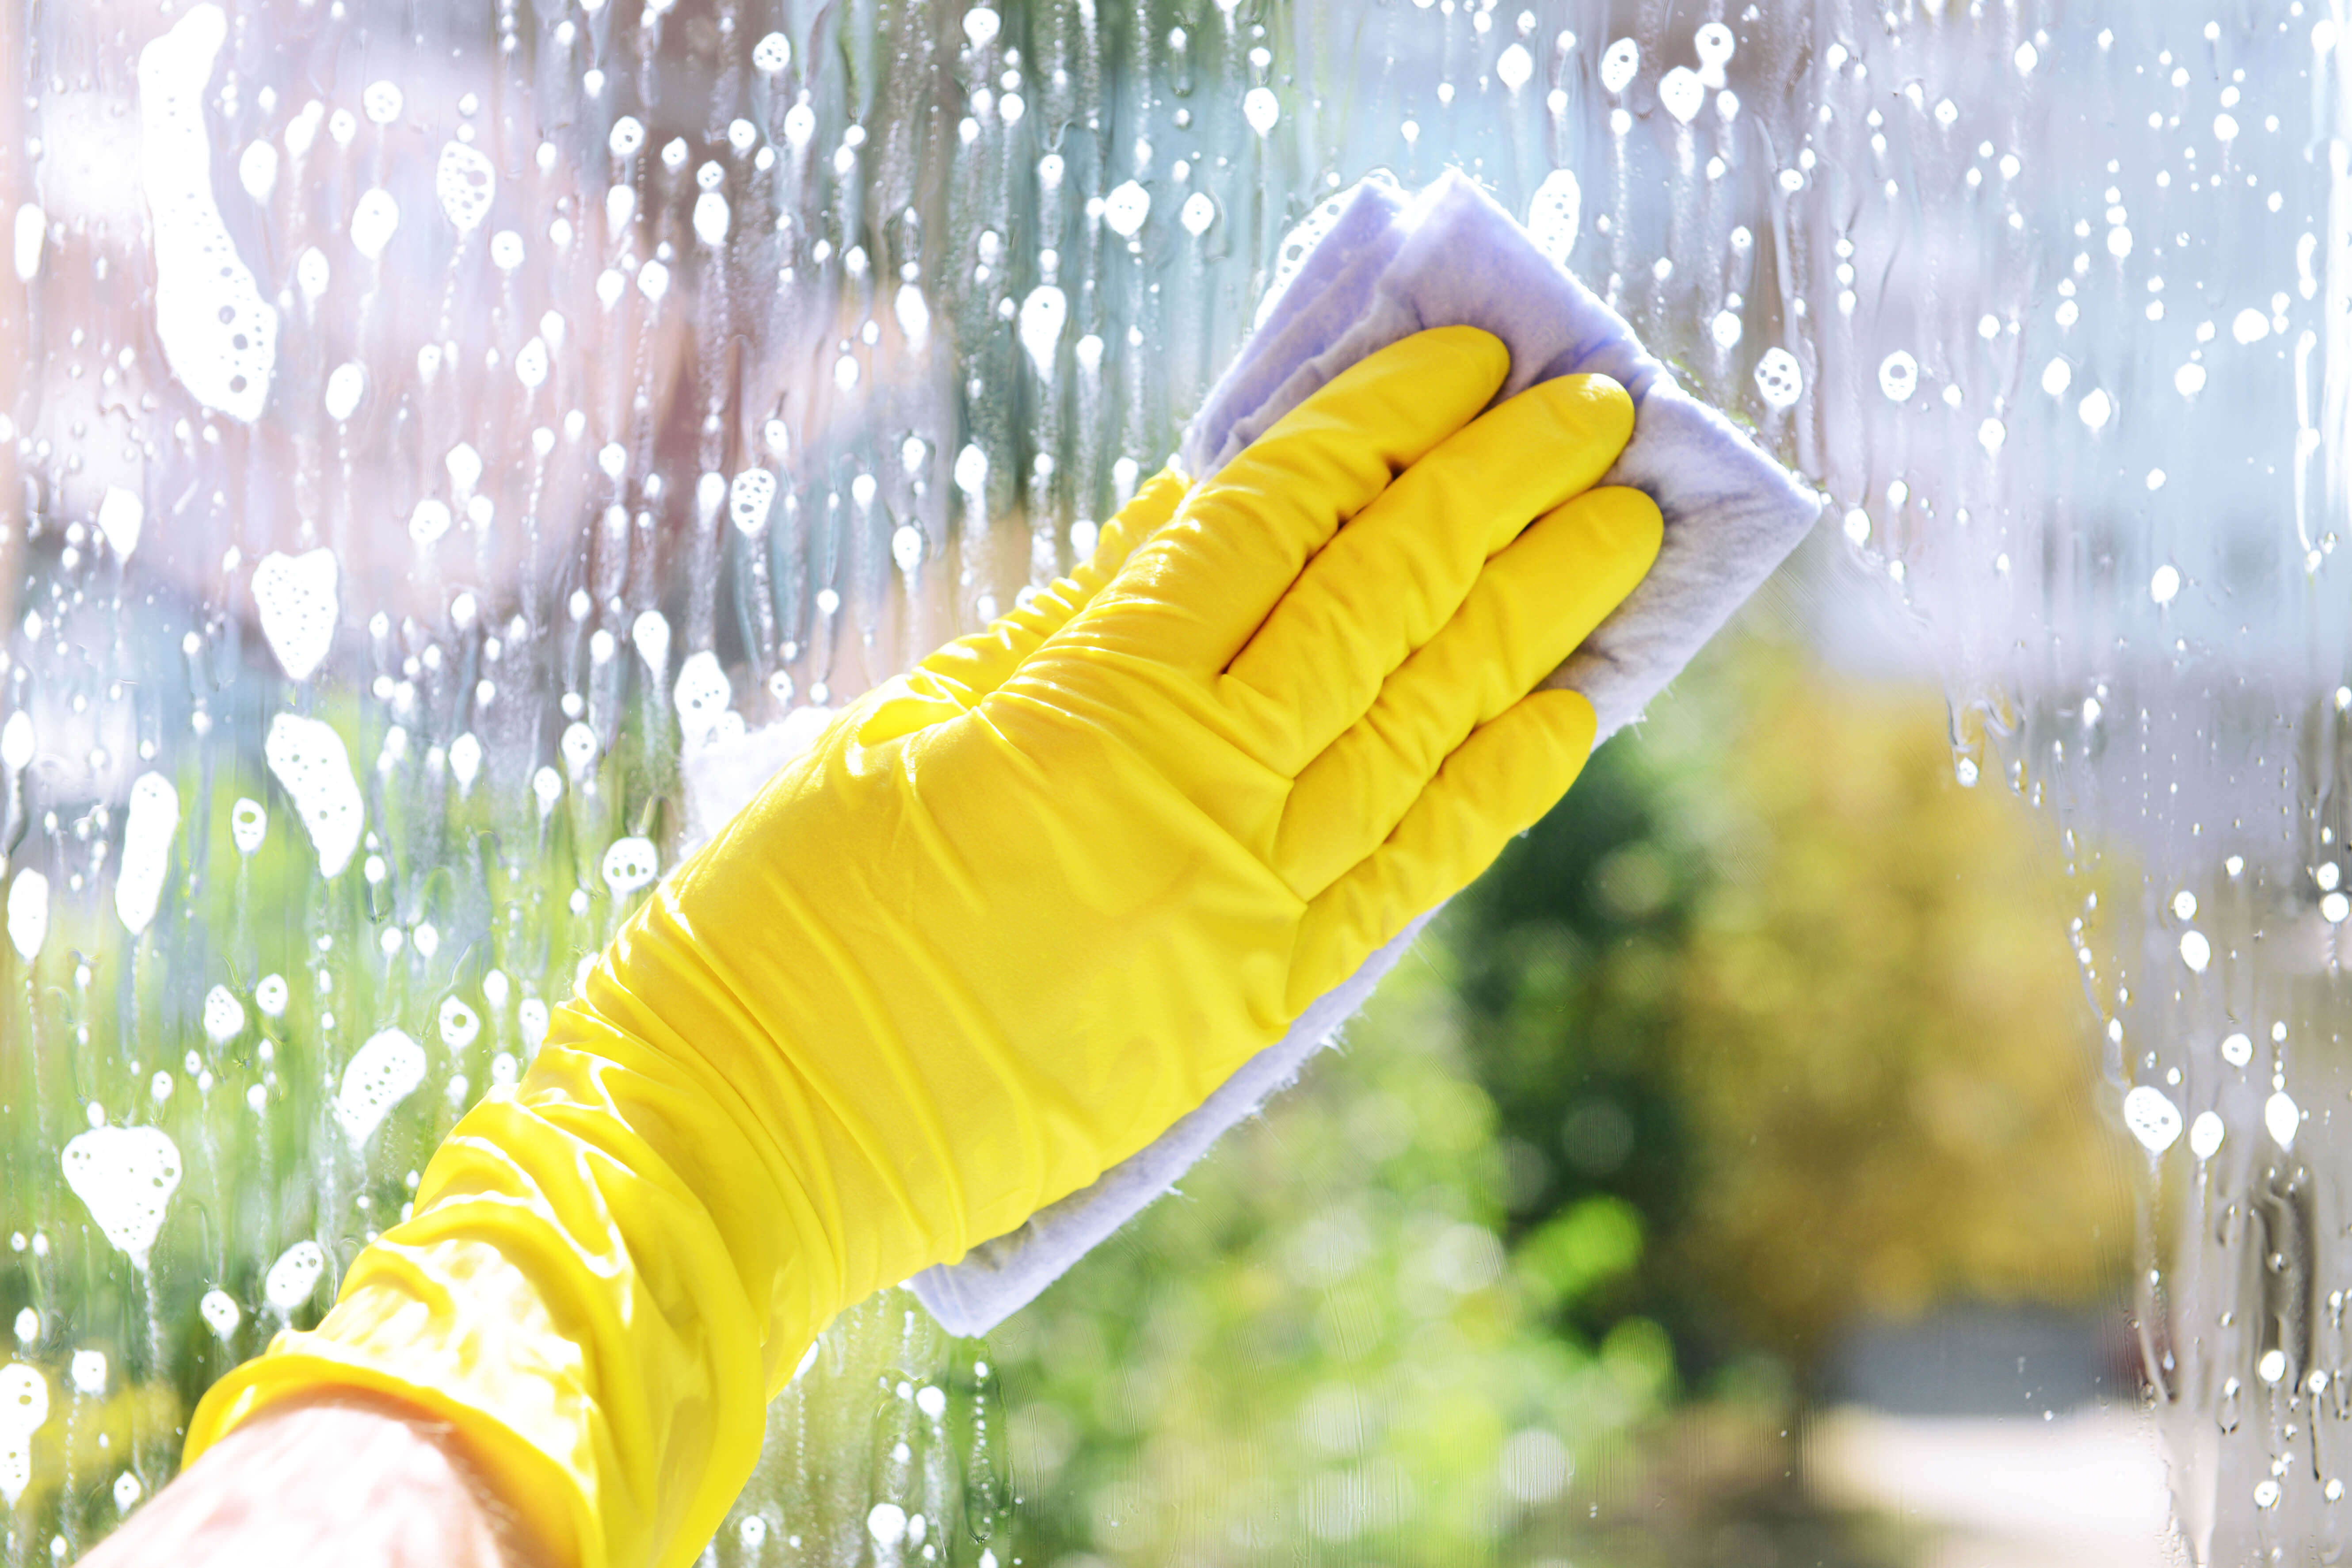 Glass Fencing - Melbourne - Cleaning And Maintaining Glass Pool Fencing